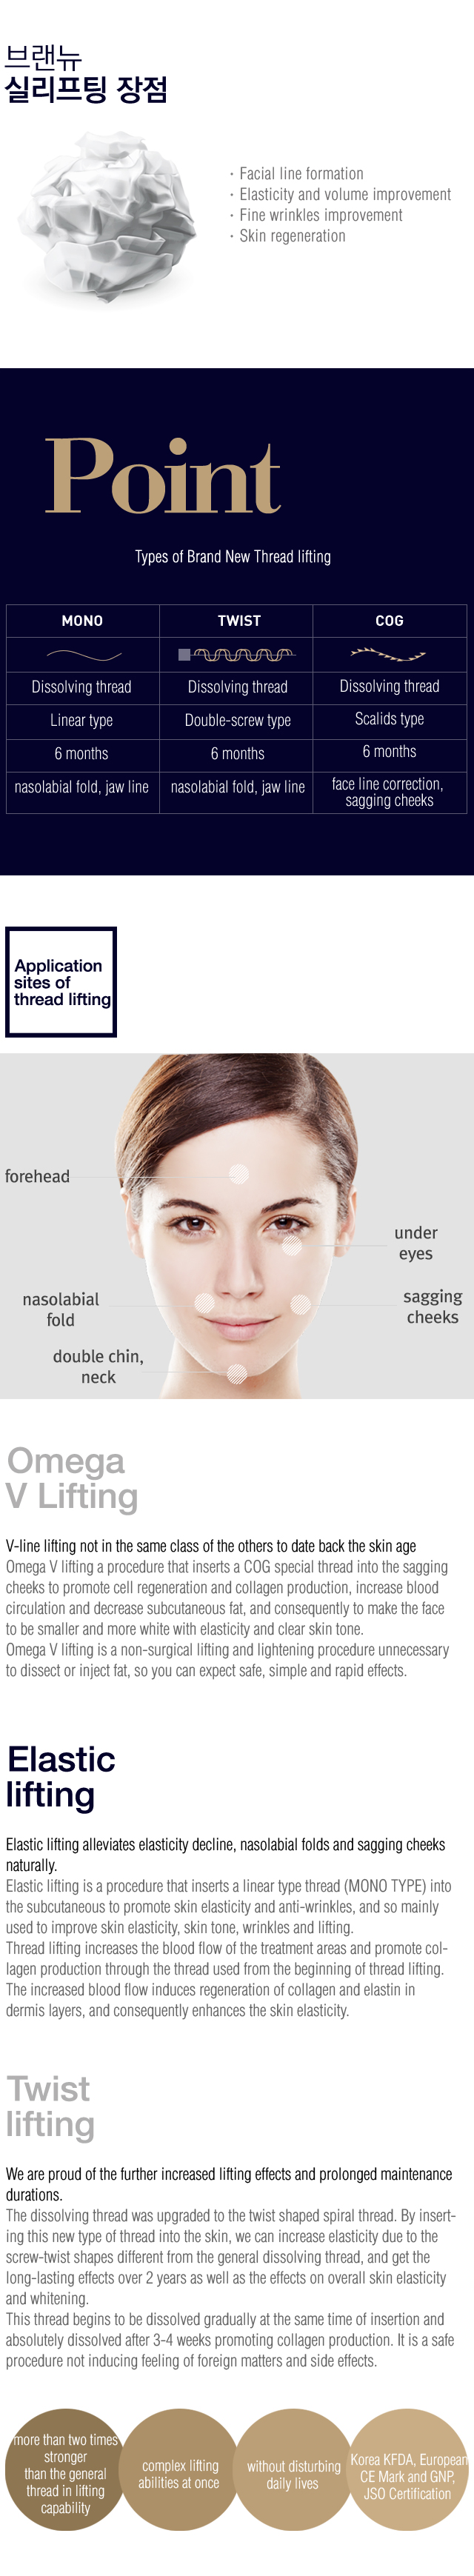 Baby face cosmetic treatment > Thread lifting